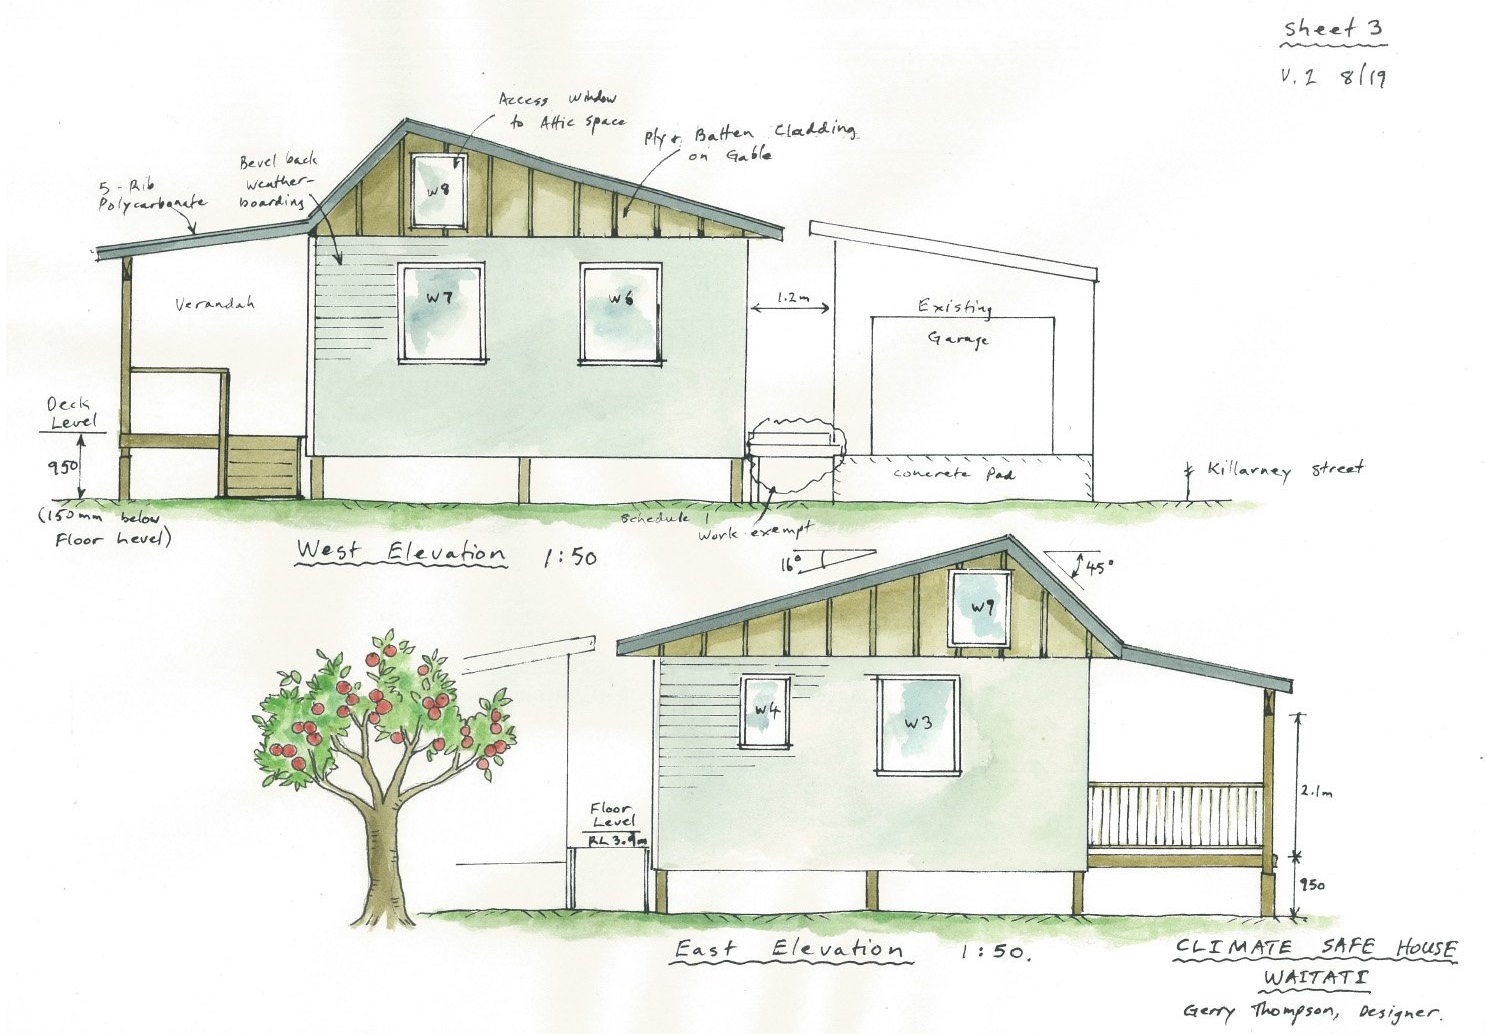 Plans for the climate-safe house being built in a partnership with Otago Polytechnic and others.